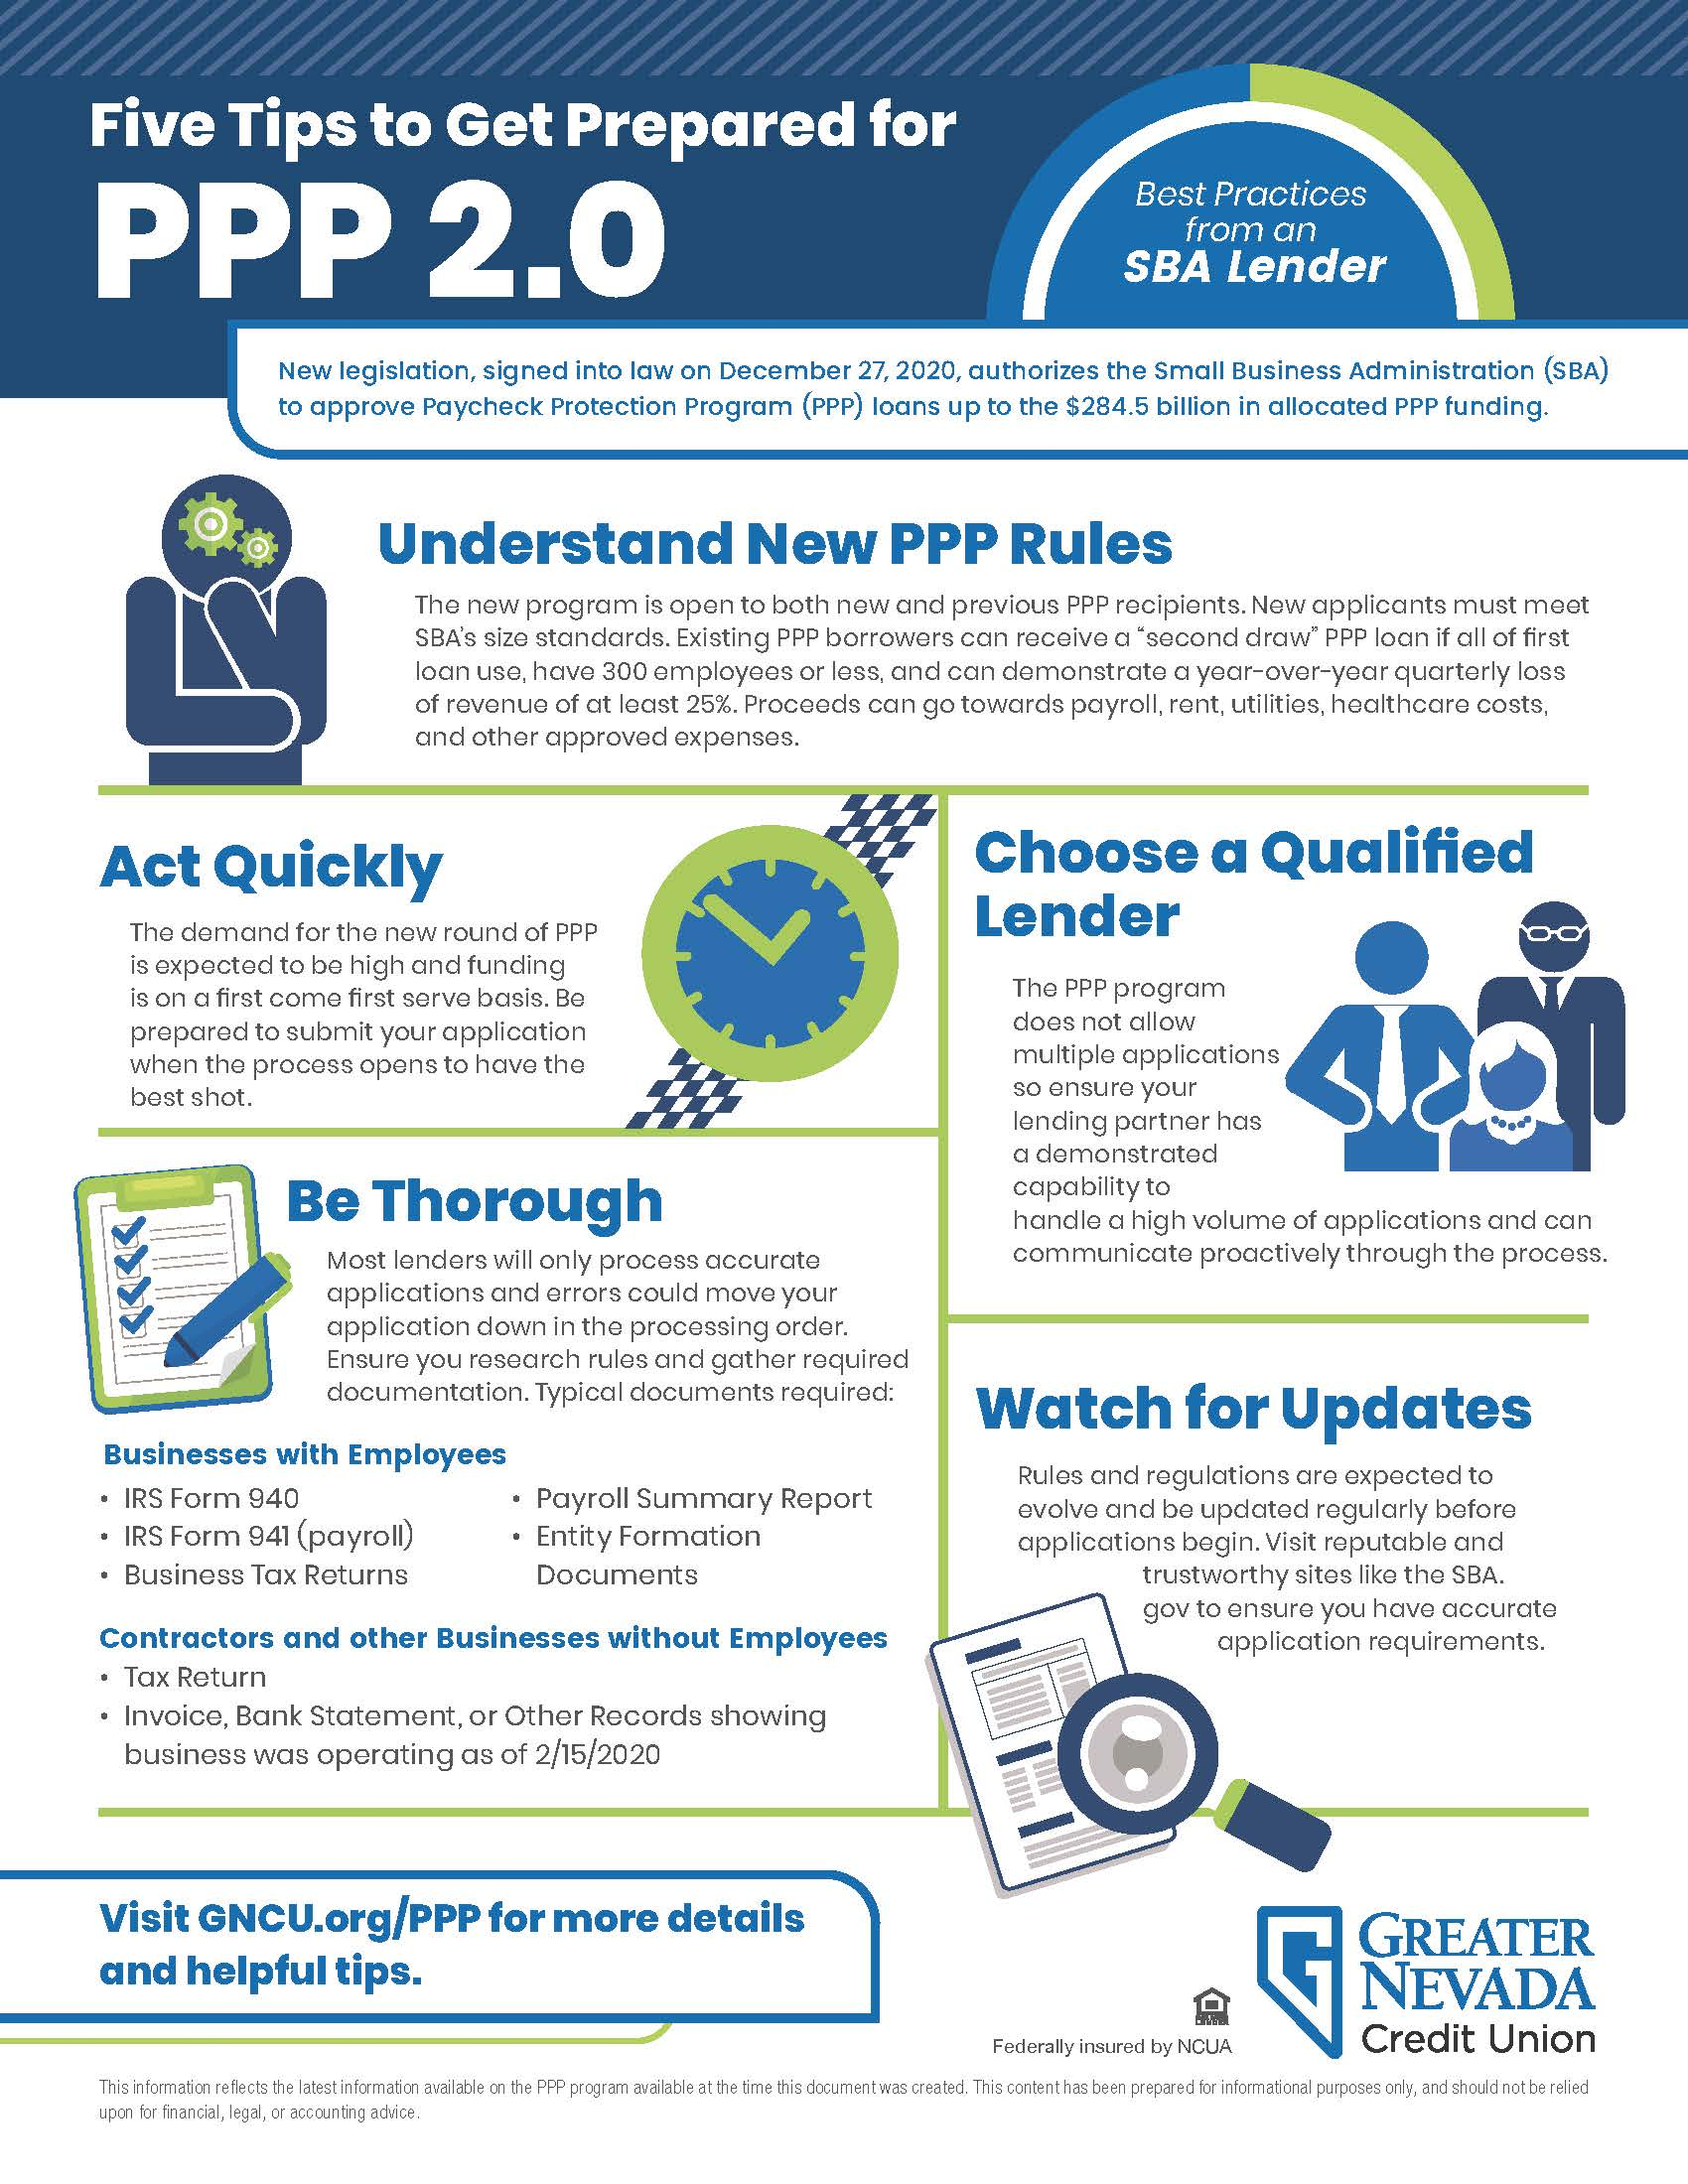 PPP 2.0 5 Tips Flyer GNCU